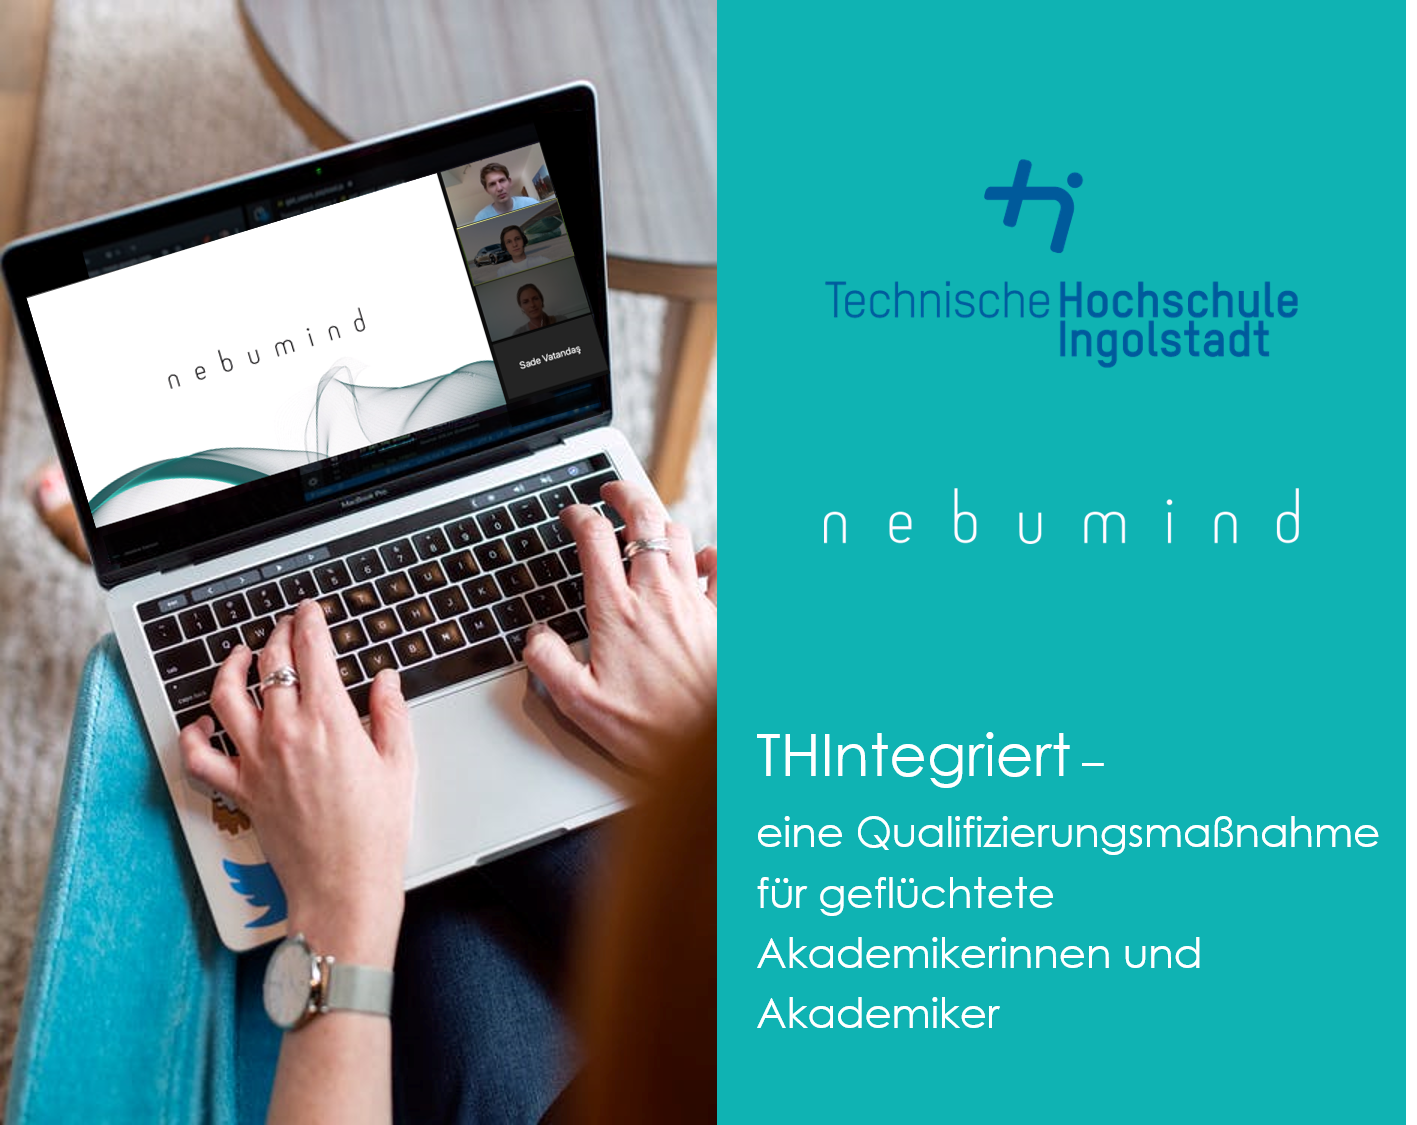 TH Ingolstadt_nebumind_lecture